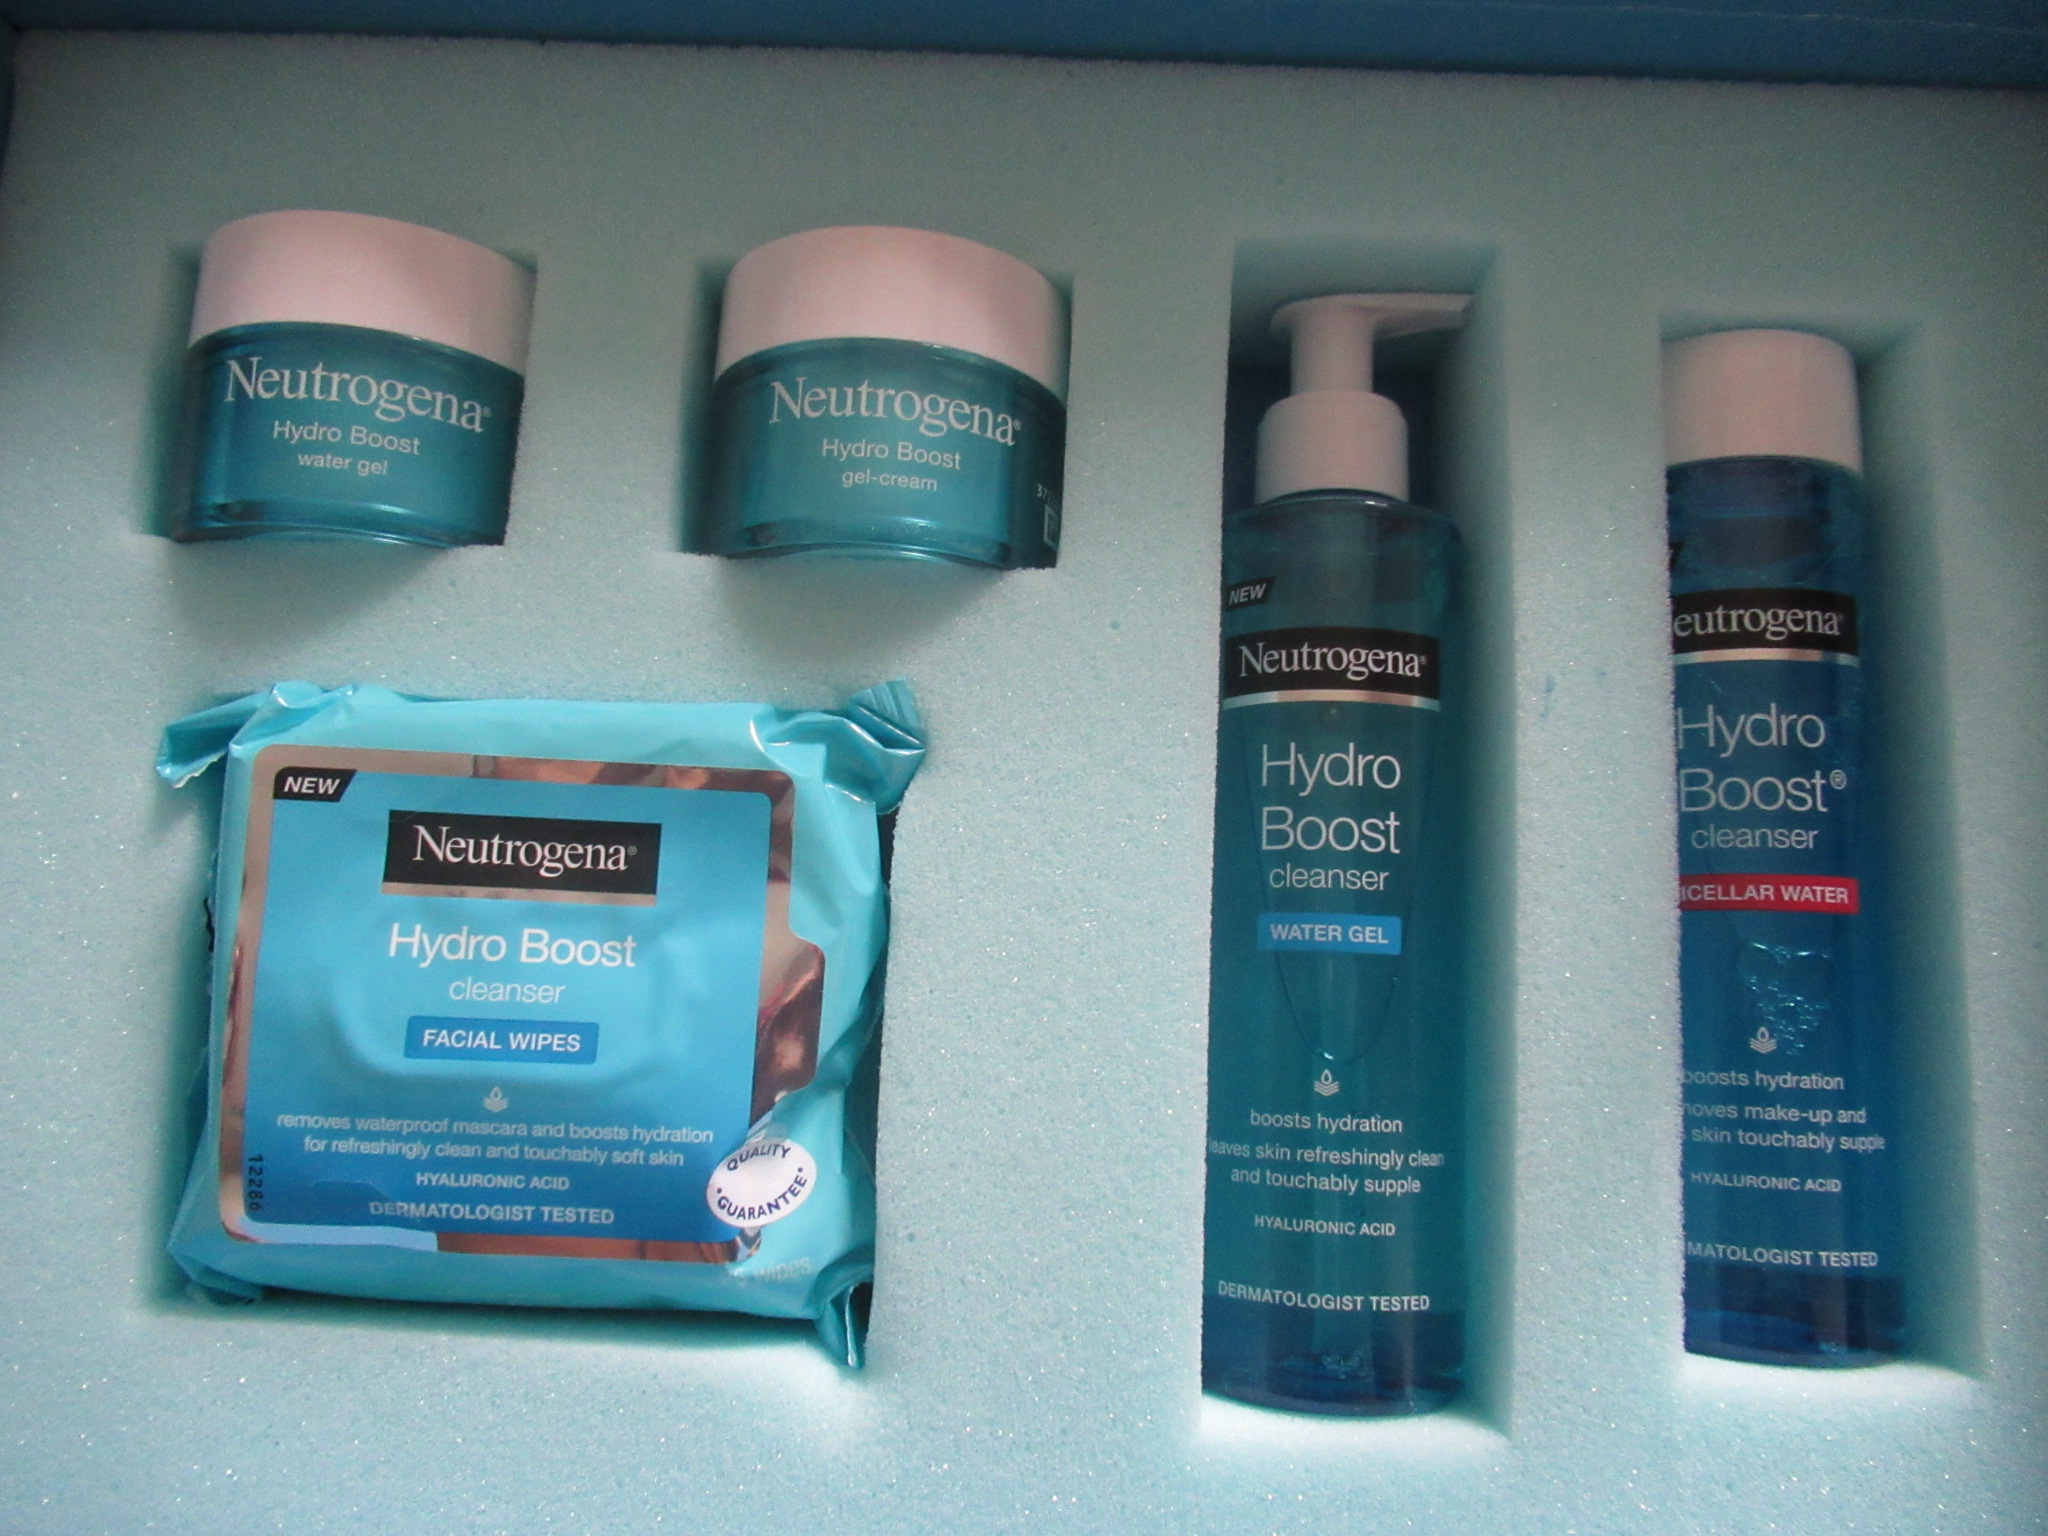 Win!!! Over €50 worth of Neutrogena Skincare products